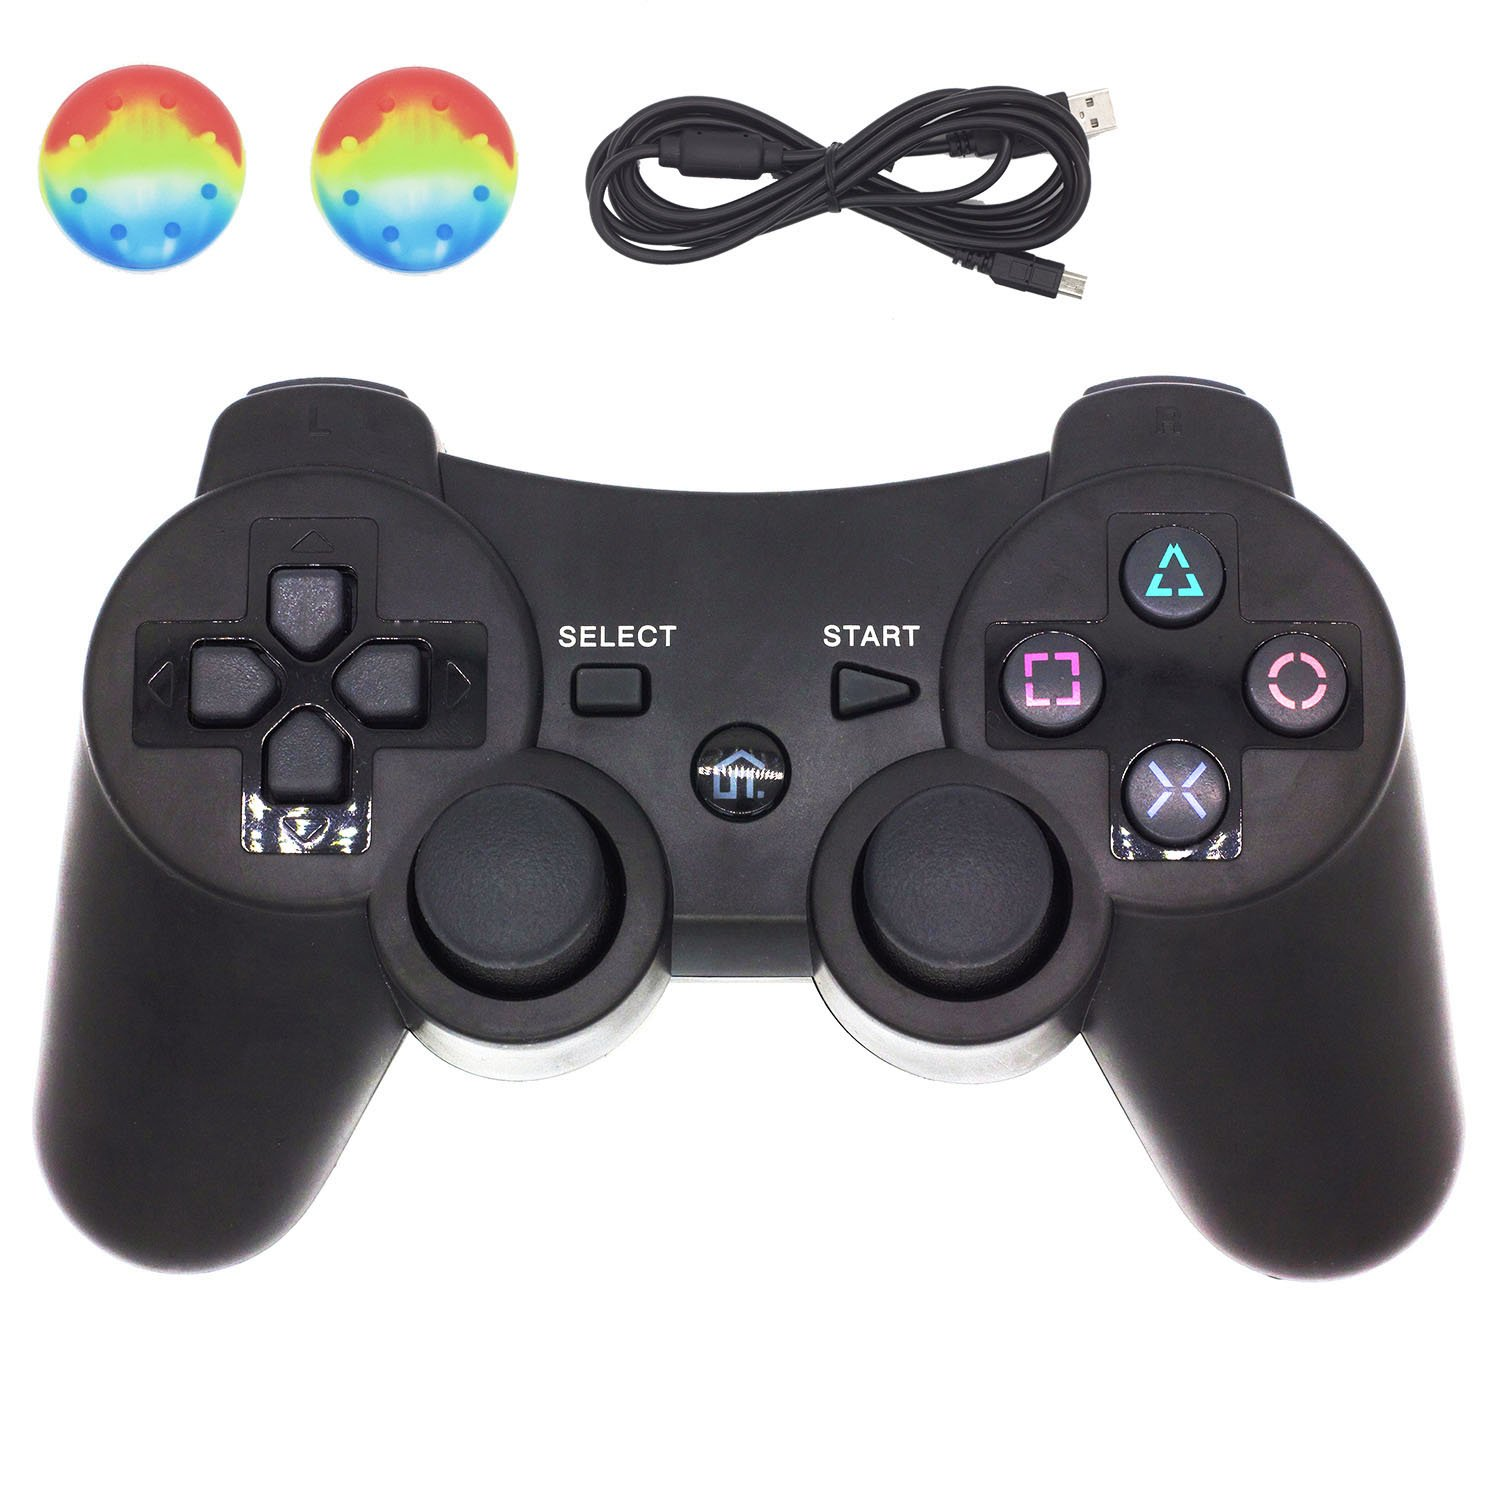 PS3 Controller, BRHE Wireless Bluetooth Dualshock 3 Gamepad PS3 Games Remote Control Sixaxis Vibration Joystick for Sony Original Playstation 3 with USB Charger Cable New Upgrade Version (Black)